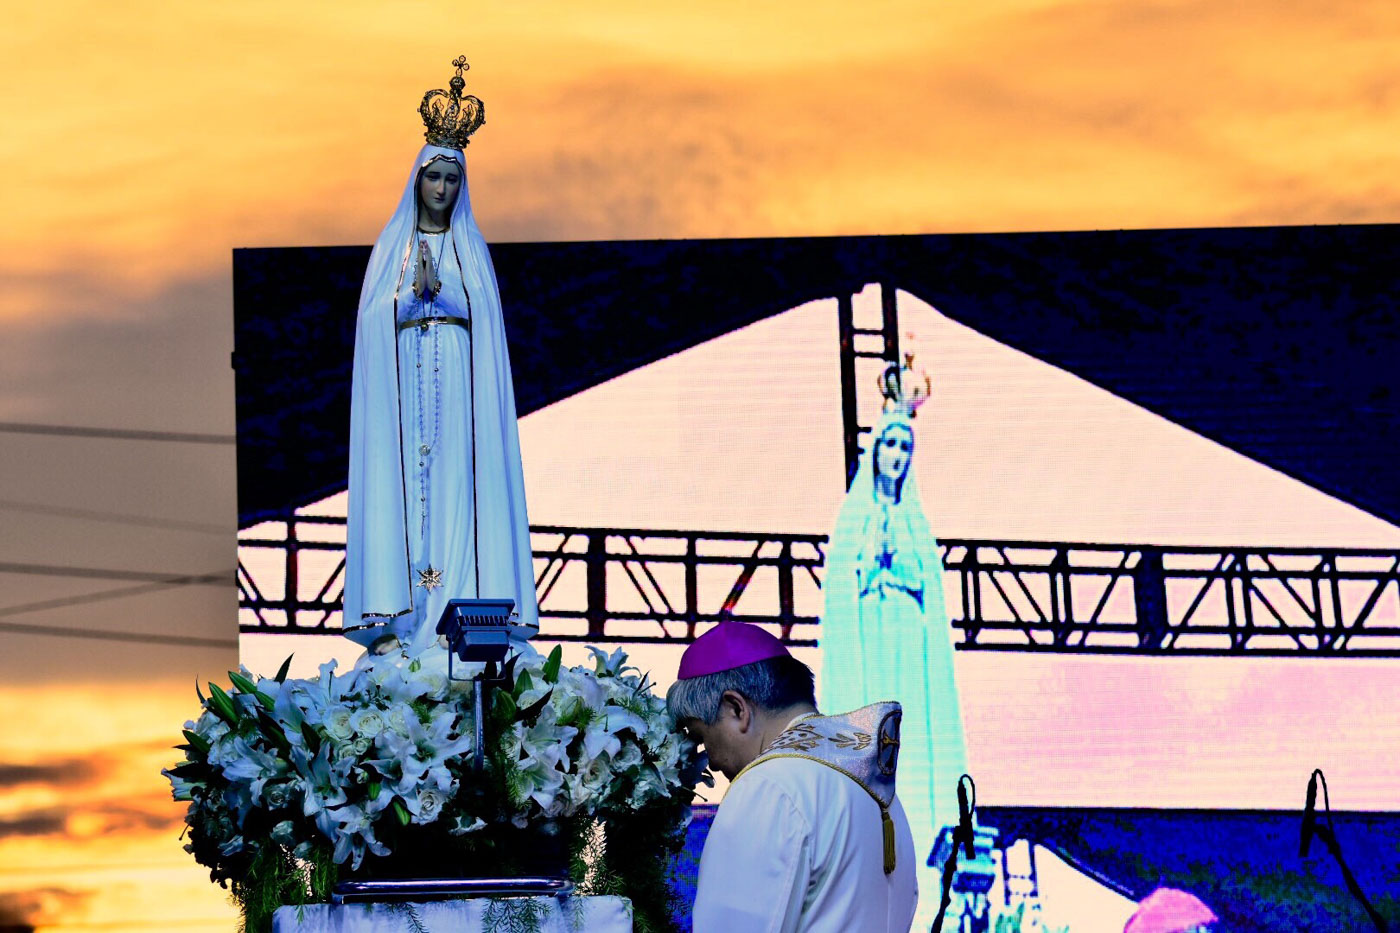 MOTHER AND SON. Lingayen-Dagupan Archbishop Socrates Villegas prays before an image of Our Lady of Fatima in an anti-EJK event at the People Power Monument on November 5, 2017. Photo by Angie de Silva/Rappler